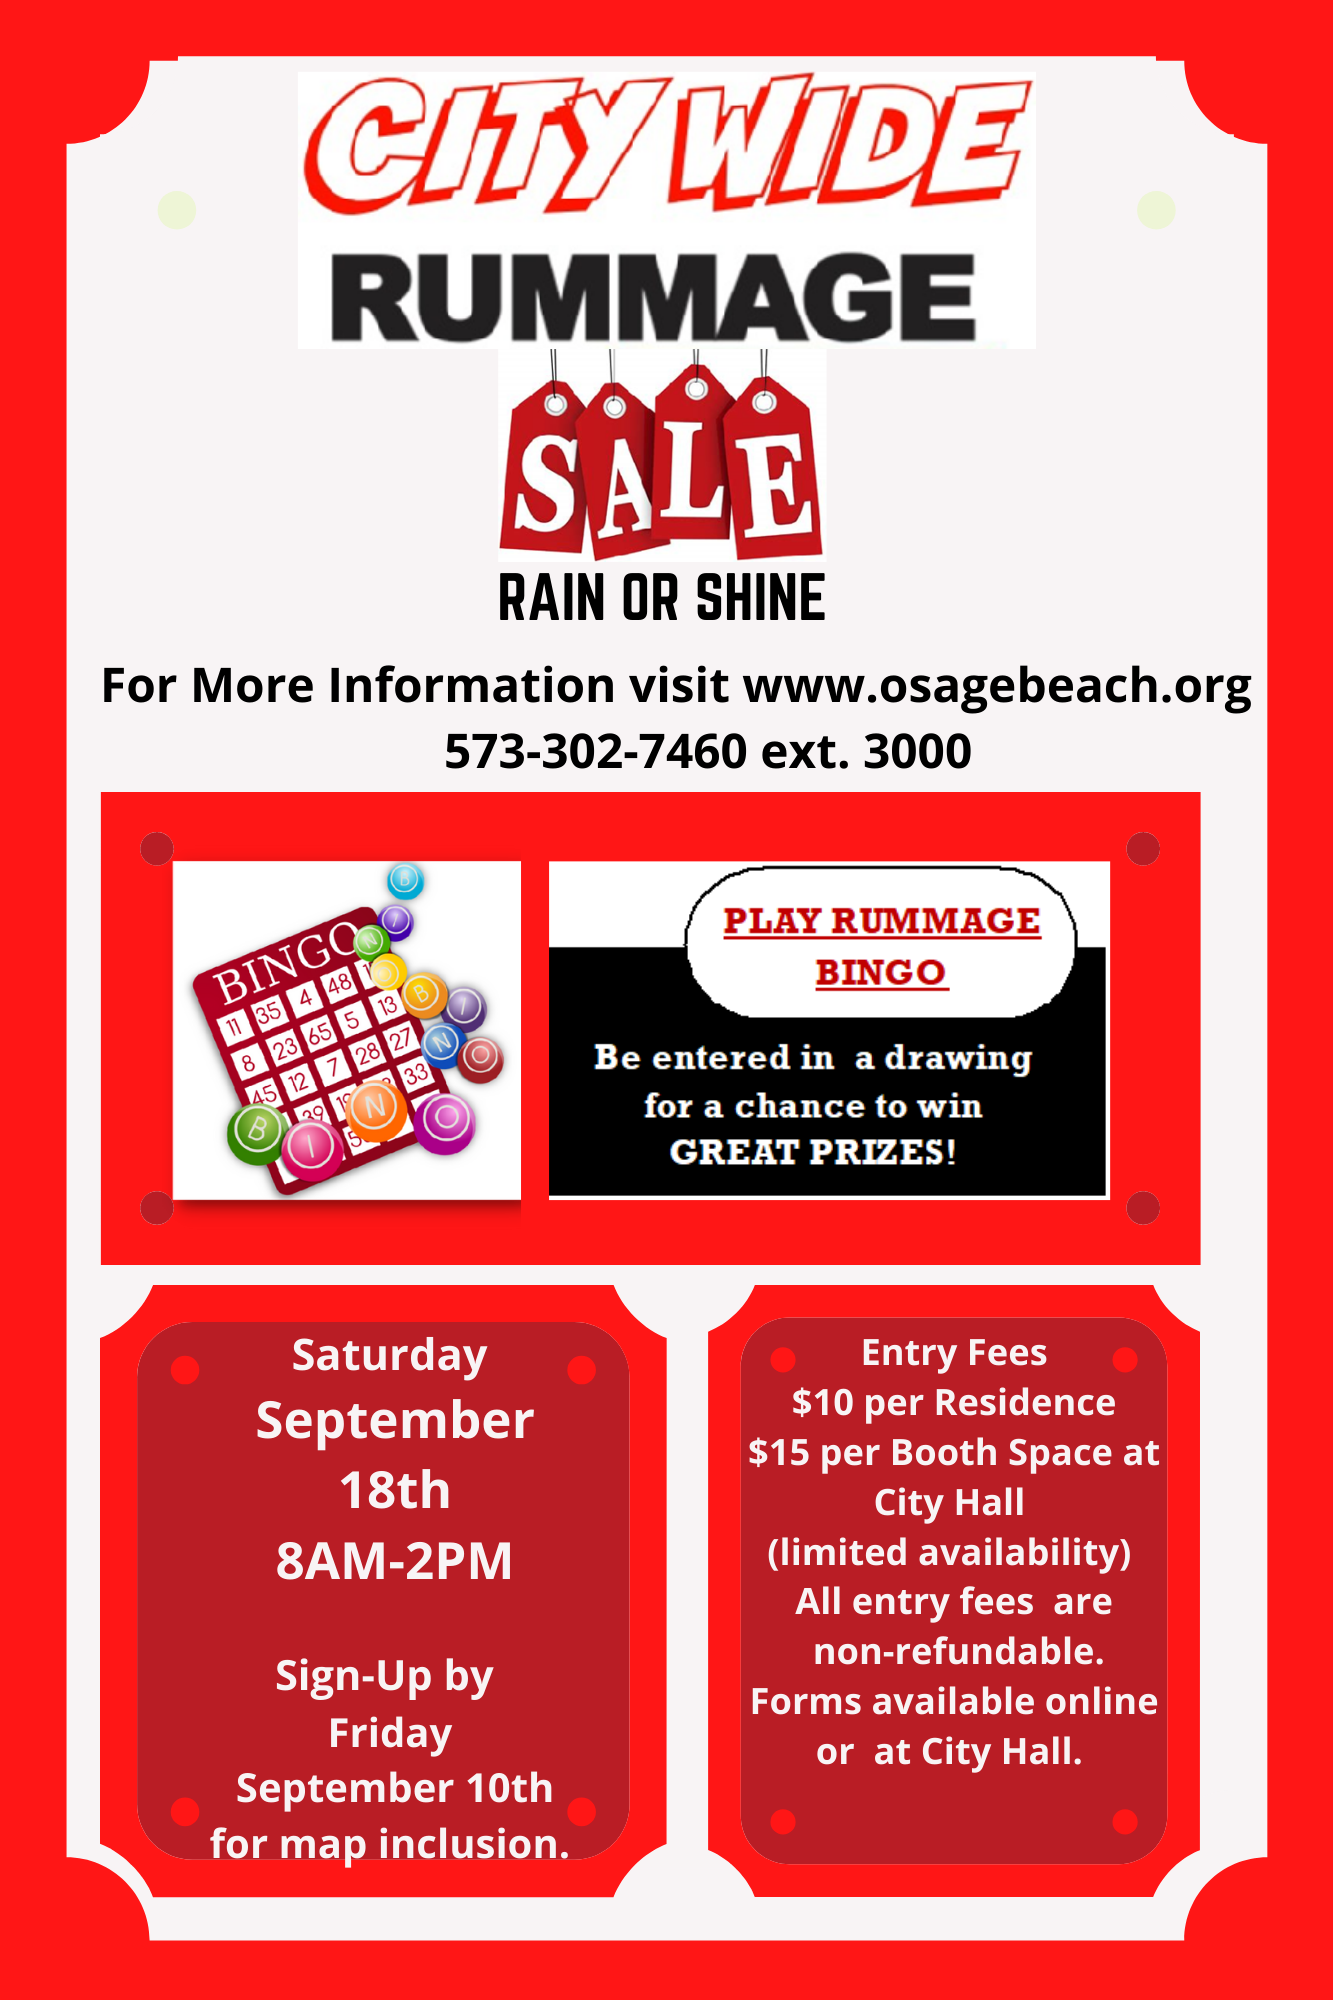 All Details of Citywide Rummage Sale